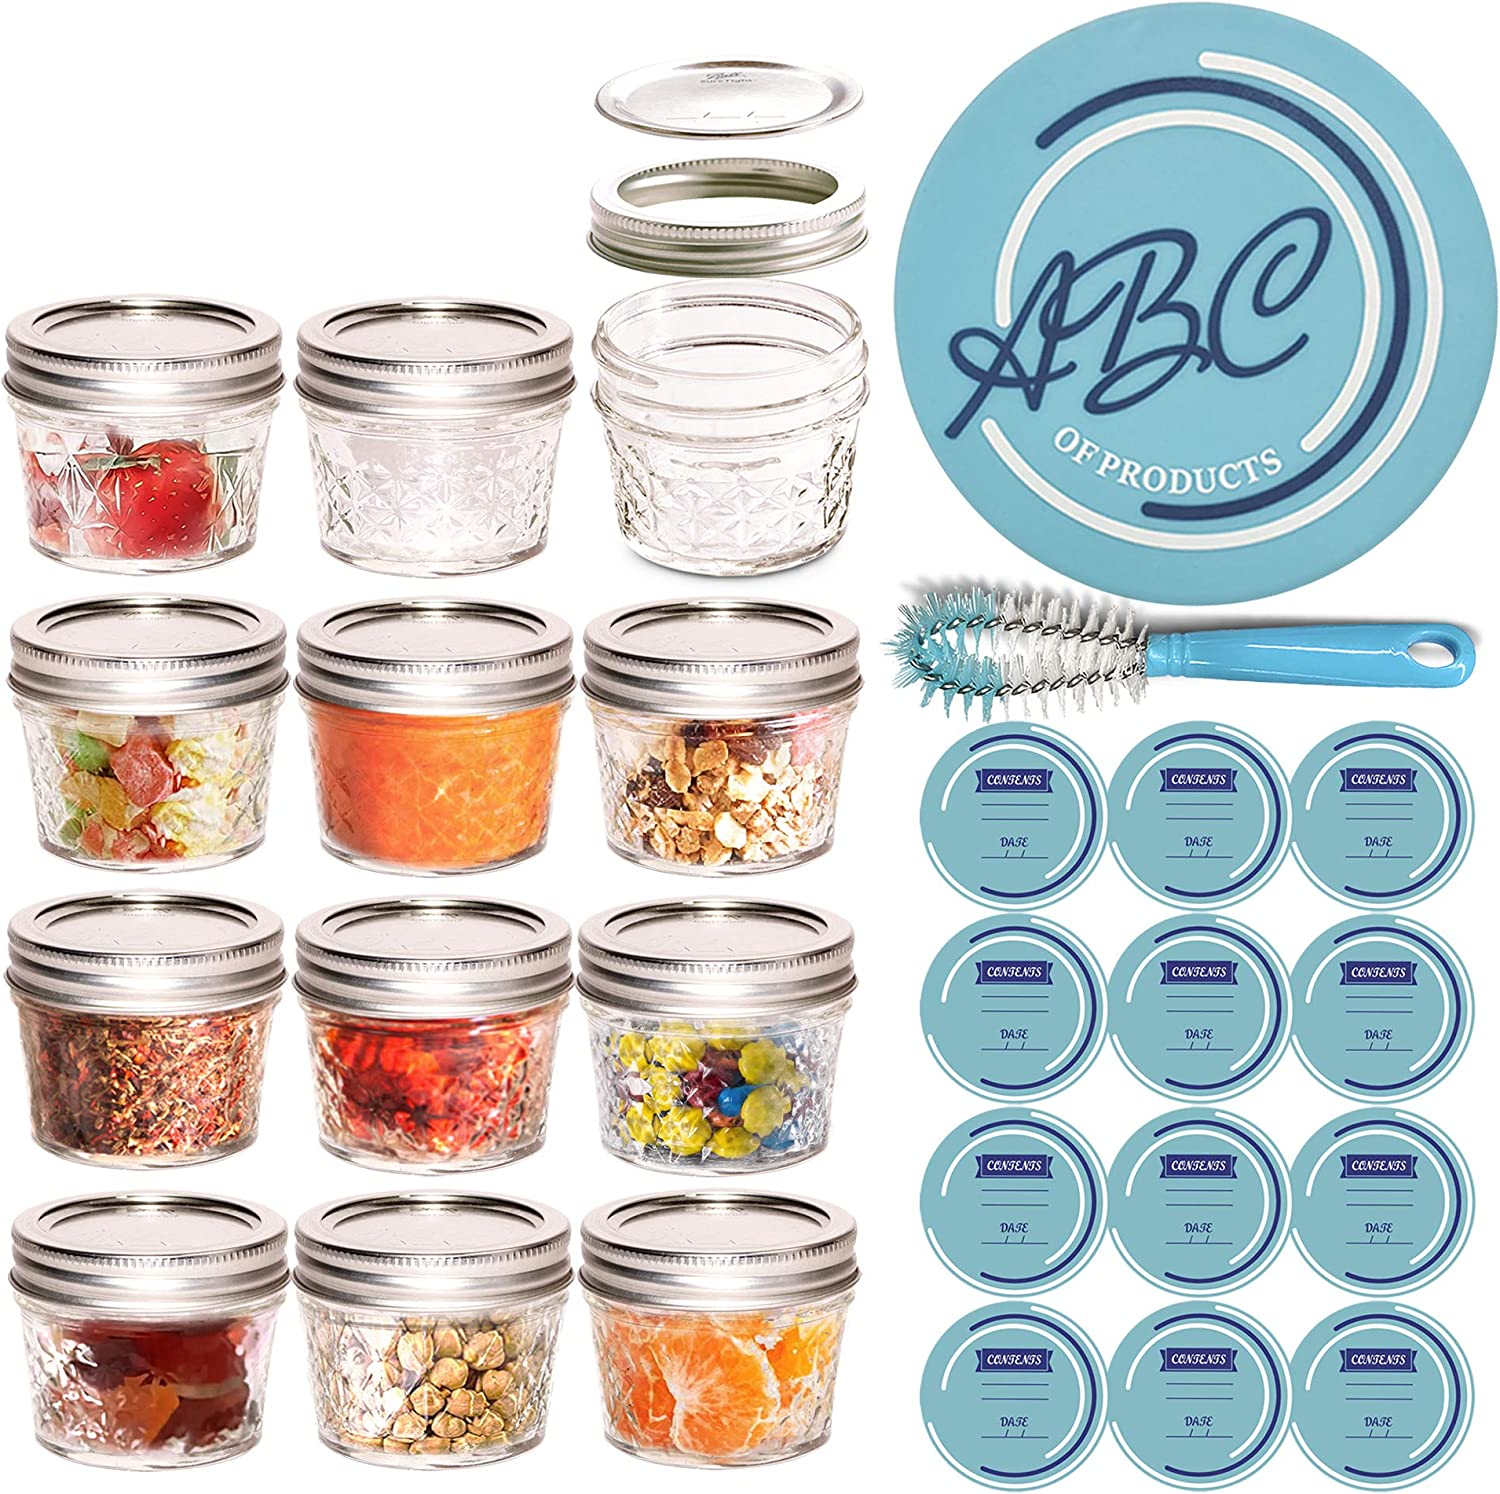 4 oz Mason Jars,12pcs Glass Jelly Jars with Lids and Bands, Quilted Glass Mason Jars and Leak-Proof Airtight Regular Lids of Corrosion Resistant Metal, Ideal for Food Storage, Honey, Jam, Spice, Baby, Decorating Jar, Wedding Favors, Shower Favors, Making Candles, BONUS Bottle Brush, Canning Labels, Silicone Jar Opener